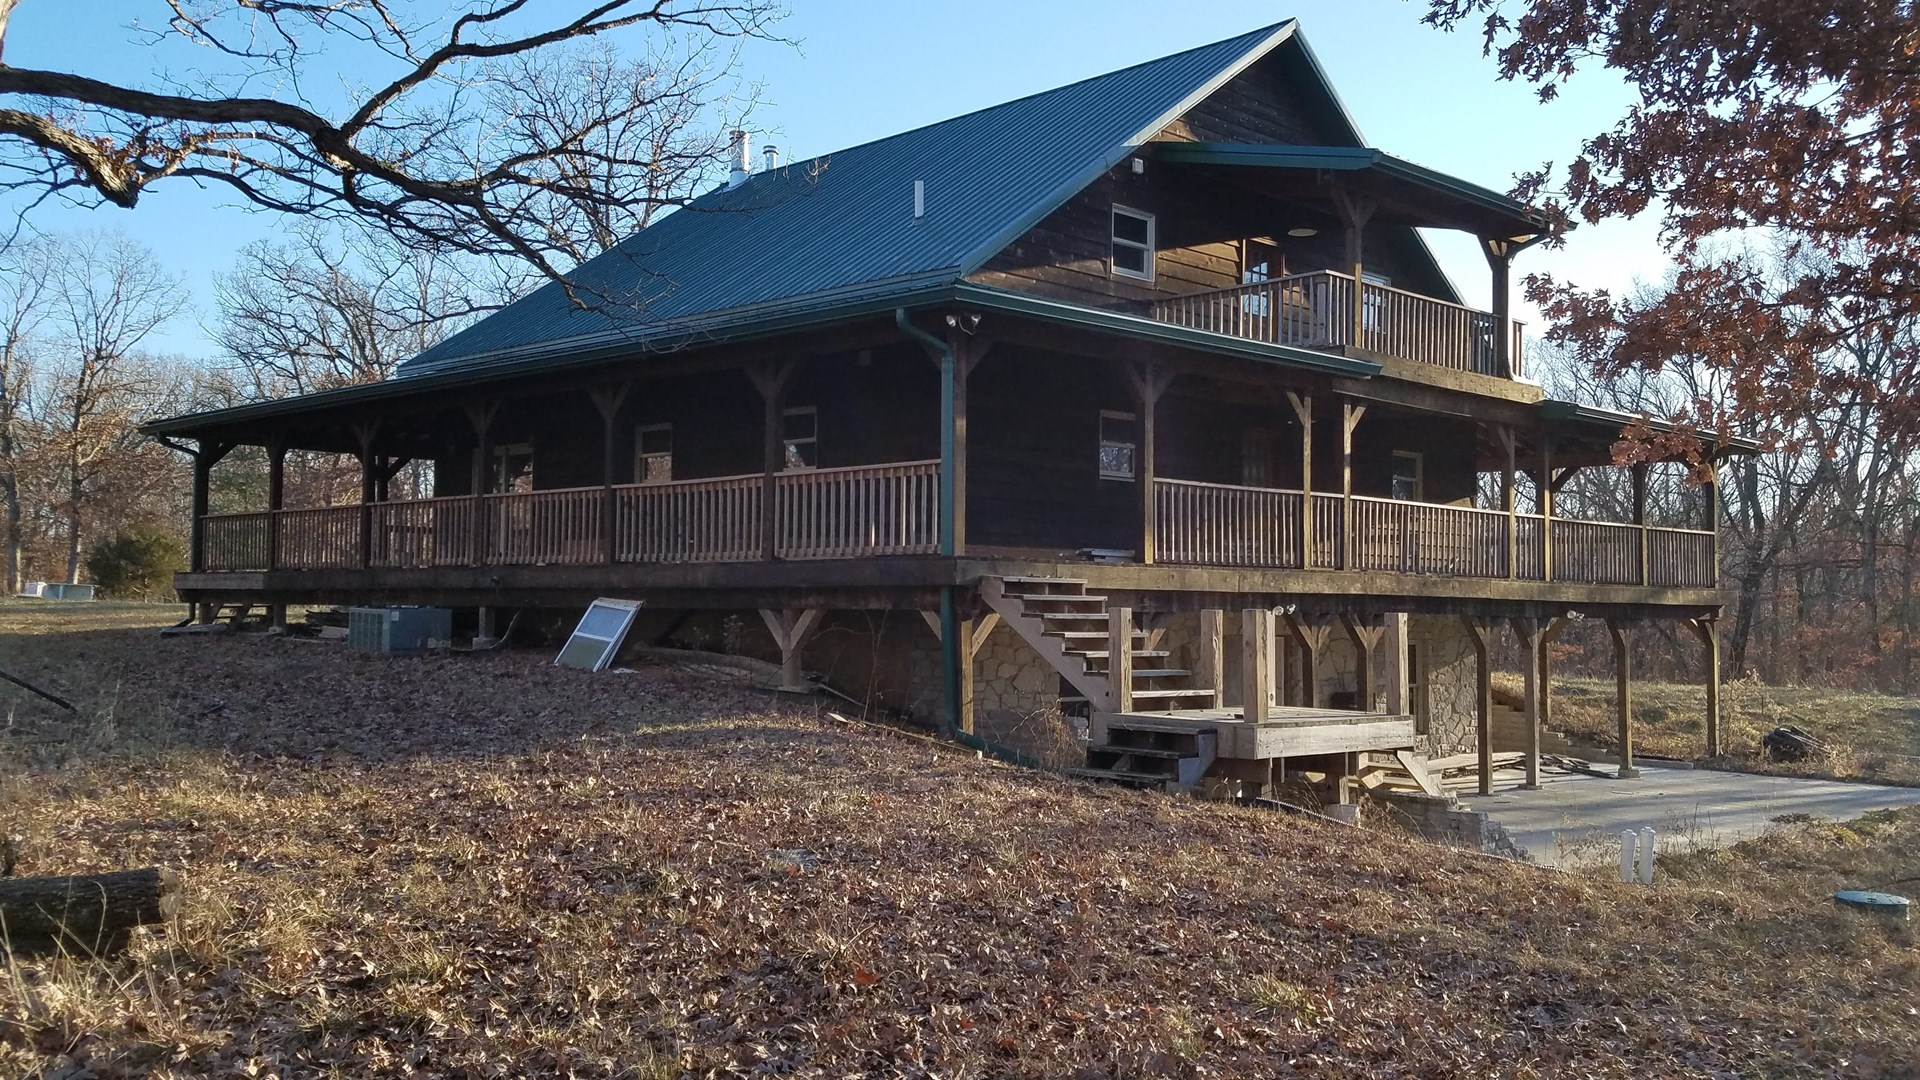 Hunting land for sale with large home, pole barn, & cabin